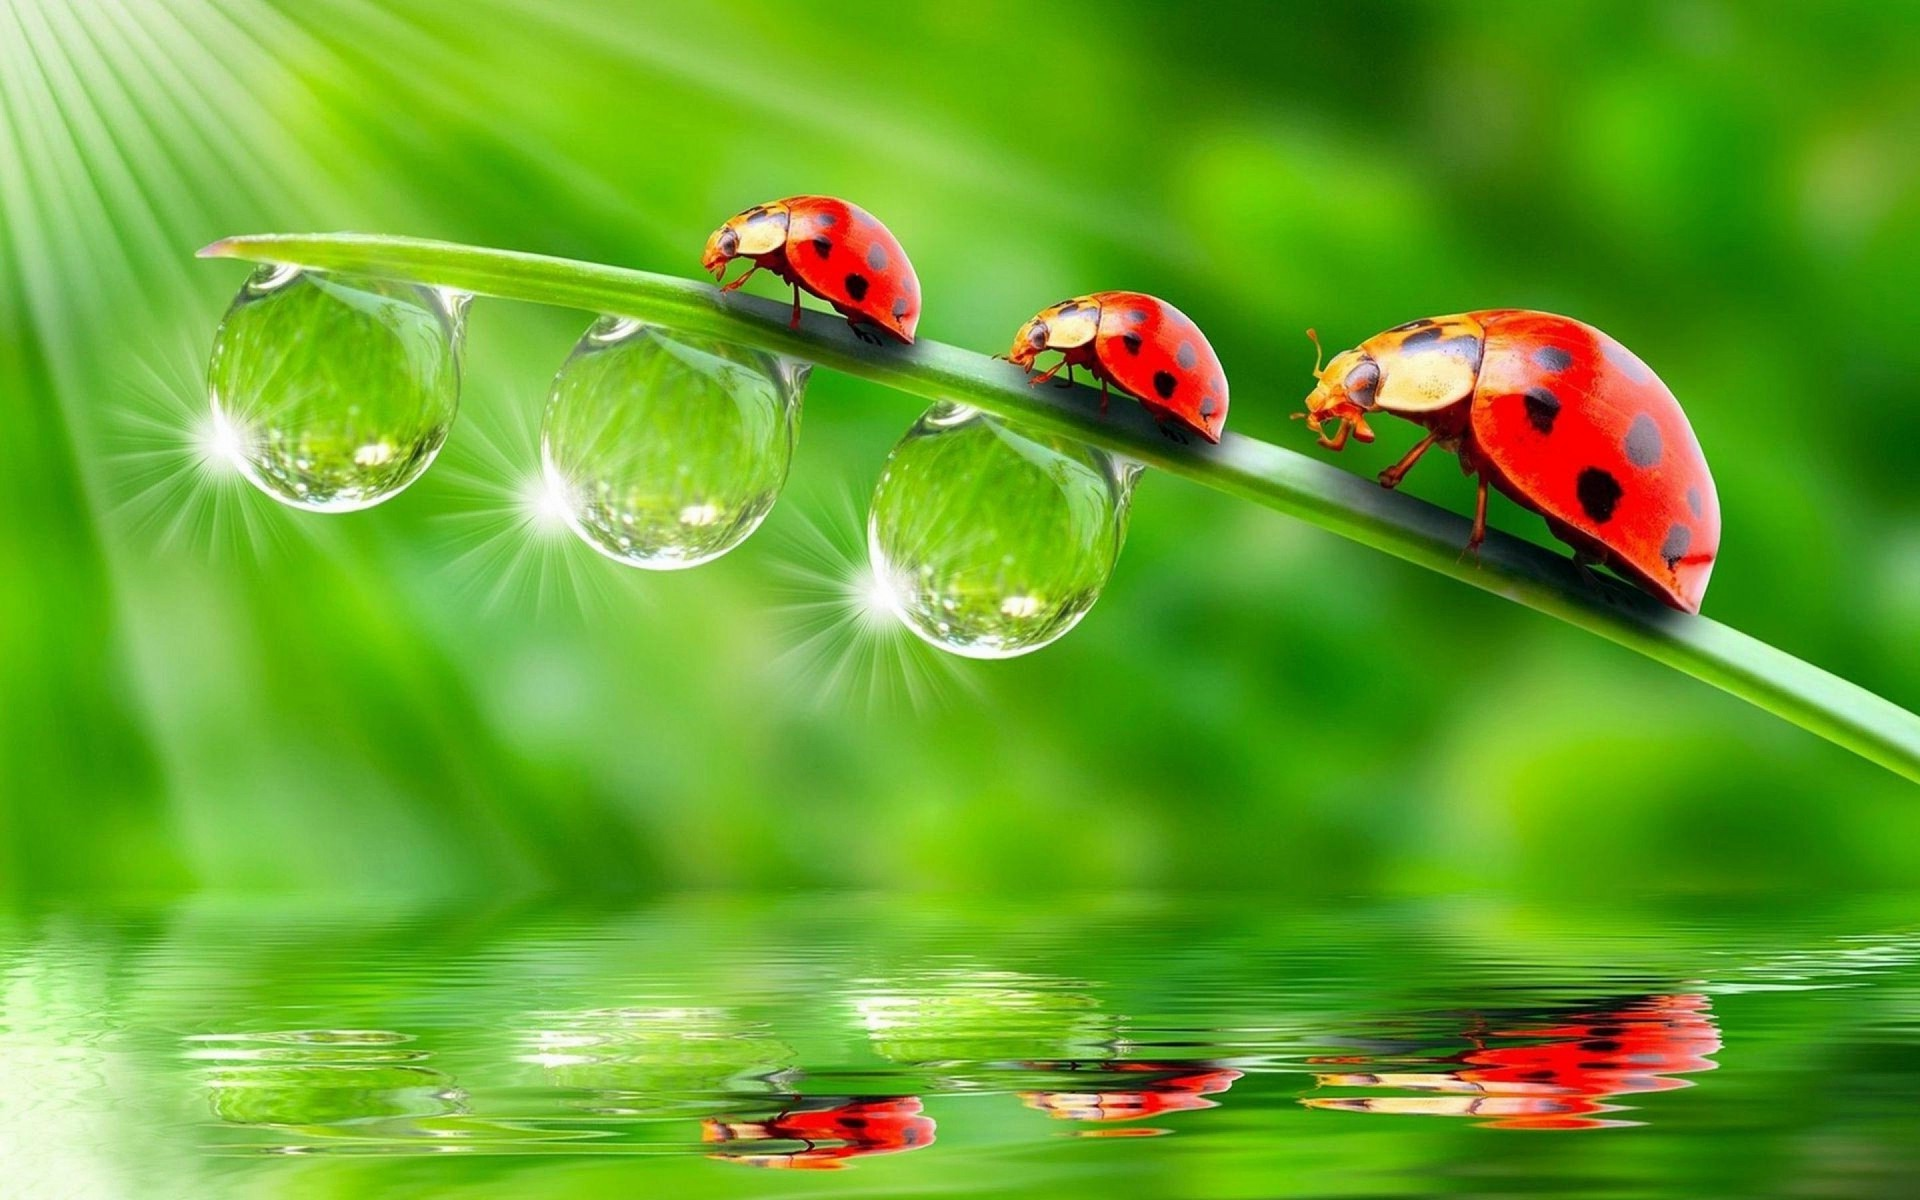 Raindrops 3d Live Wallpaper Ladybugs Animals Insect Water Drops Reflection